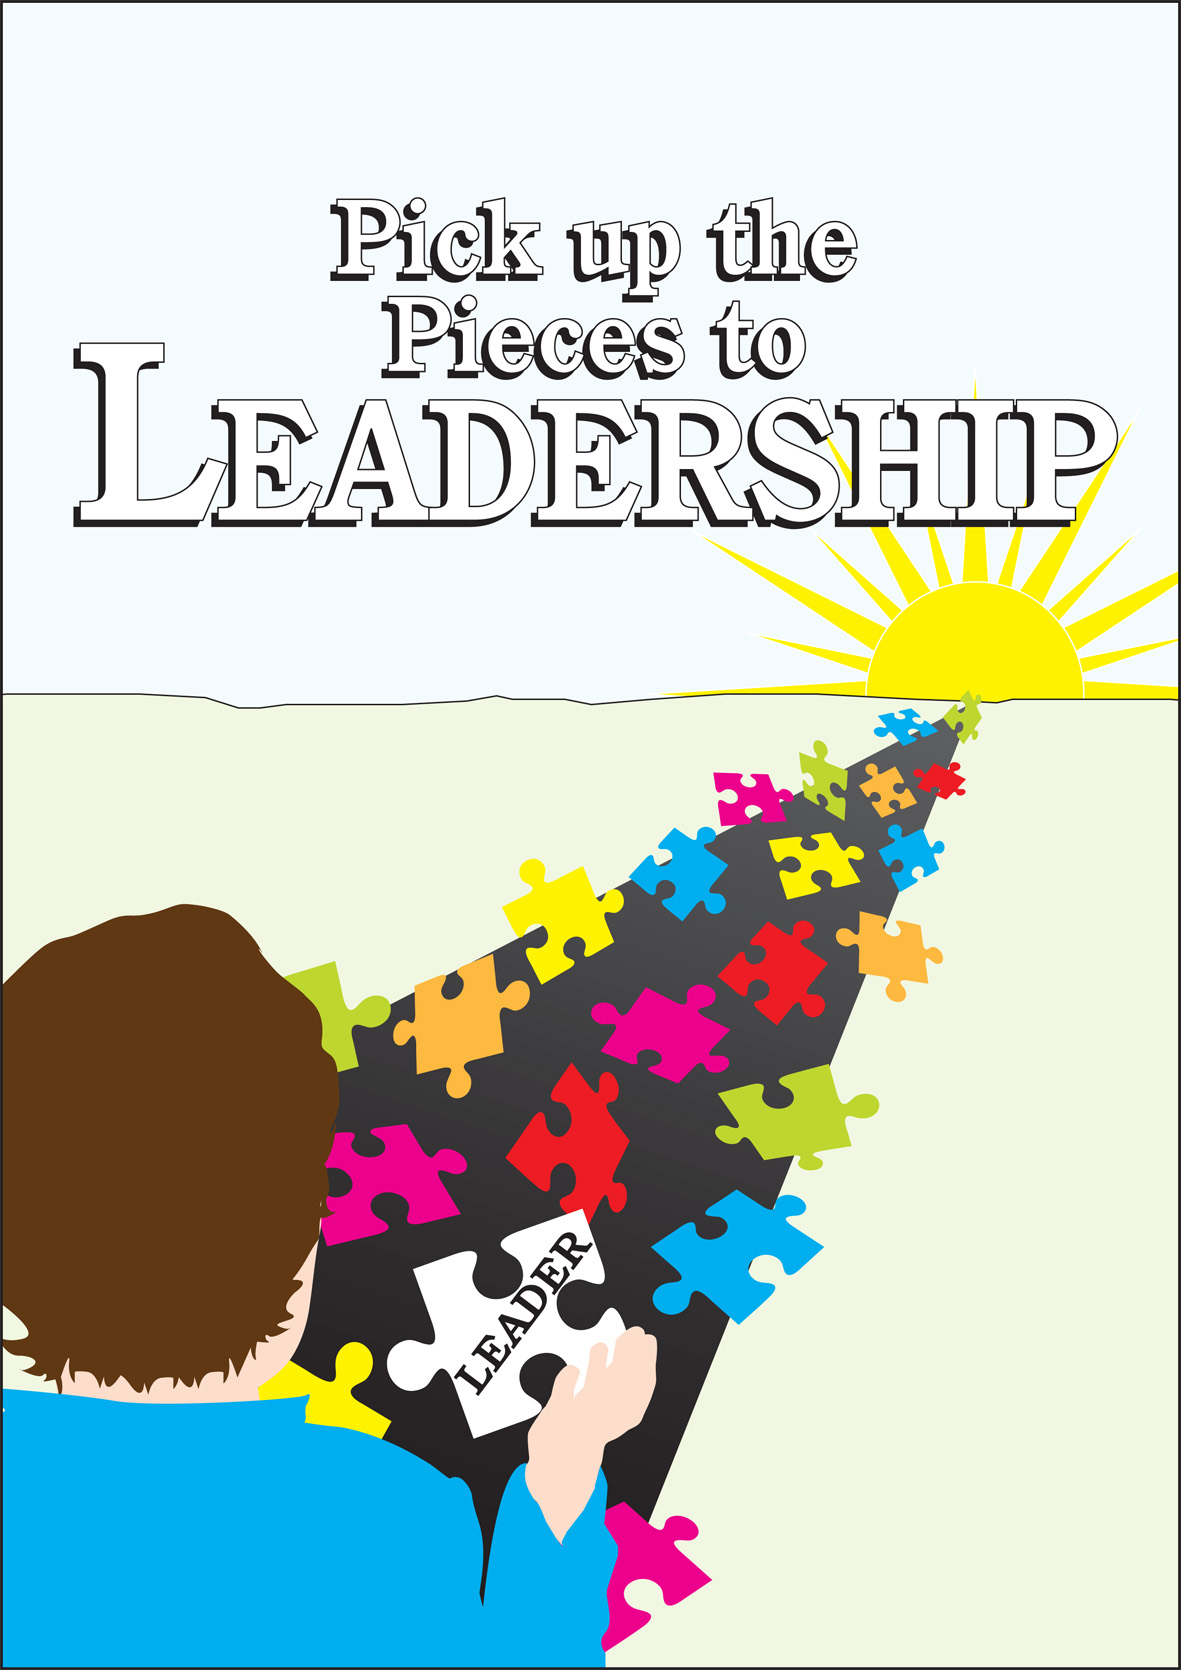 /uploaded_files/media/gallery/1519079338Leadership_Logo.jpg